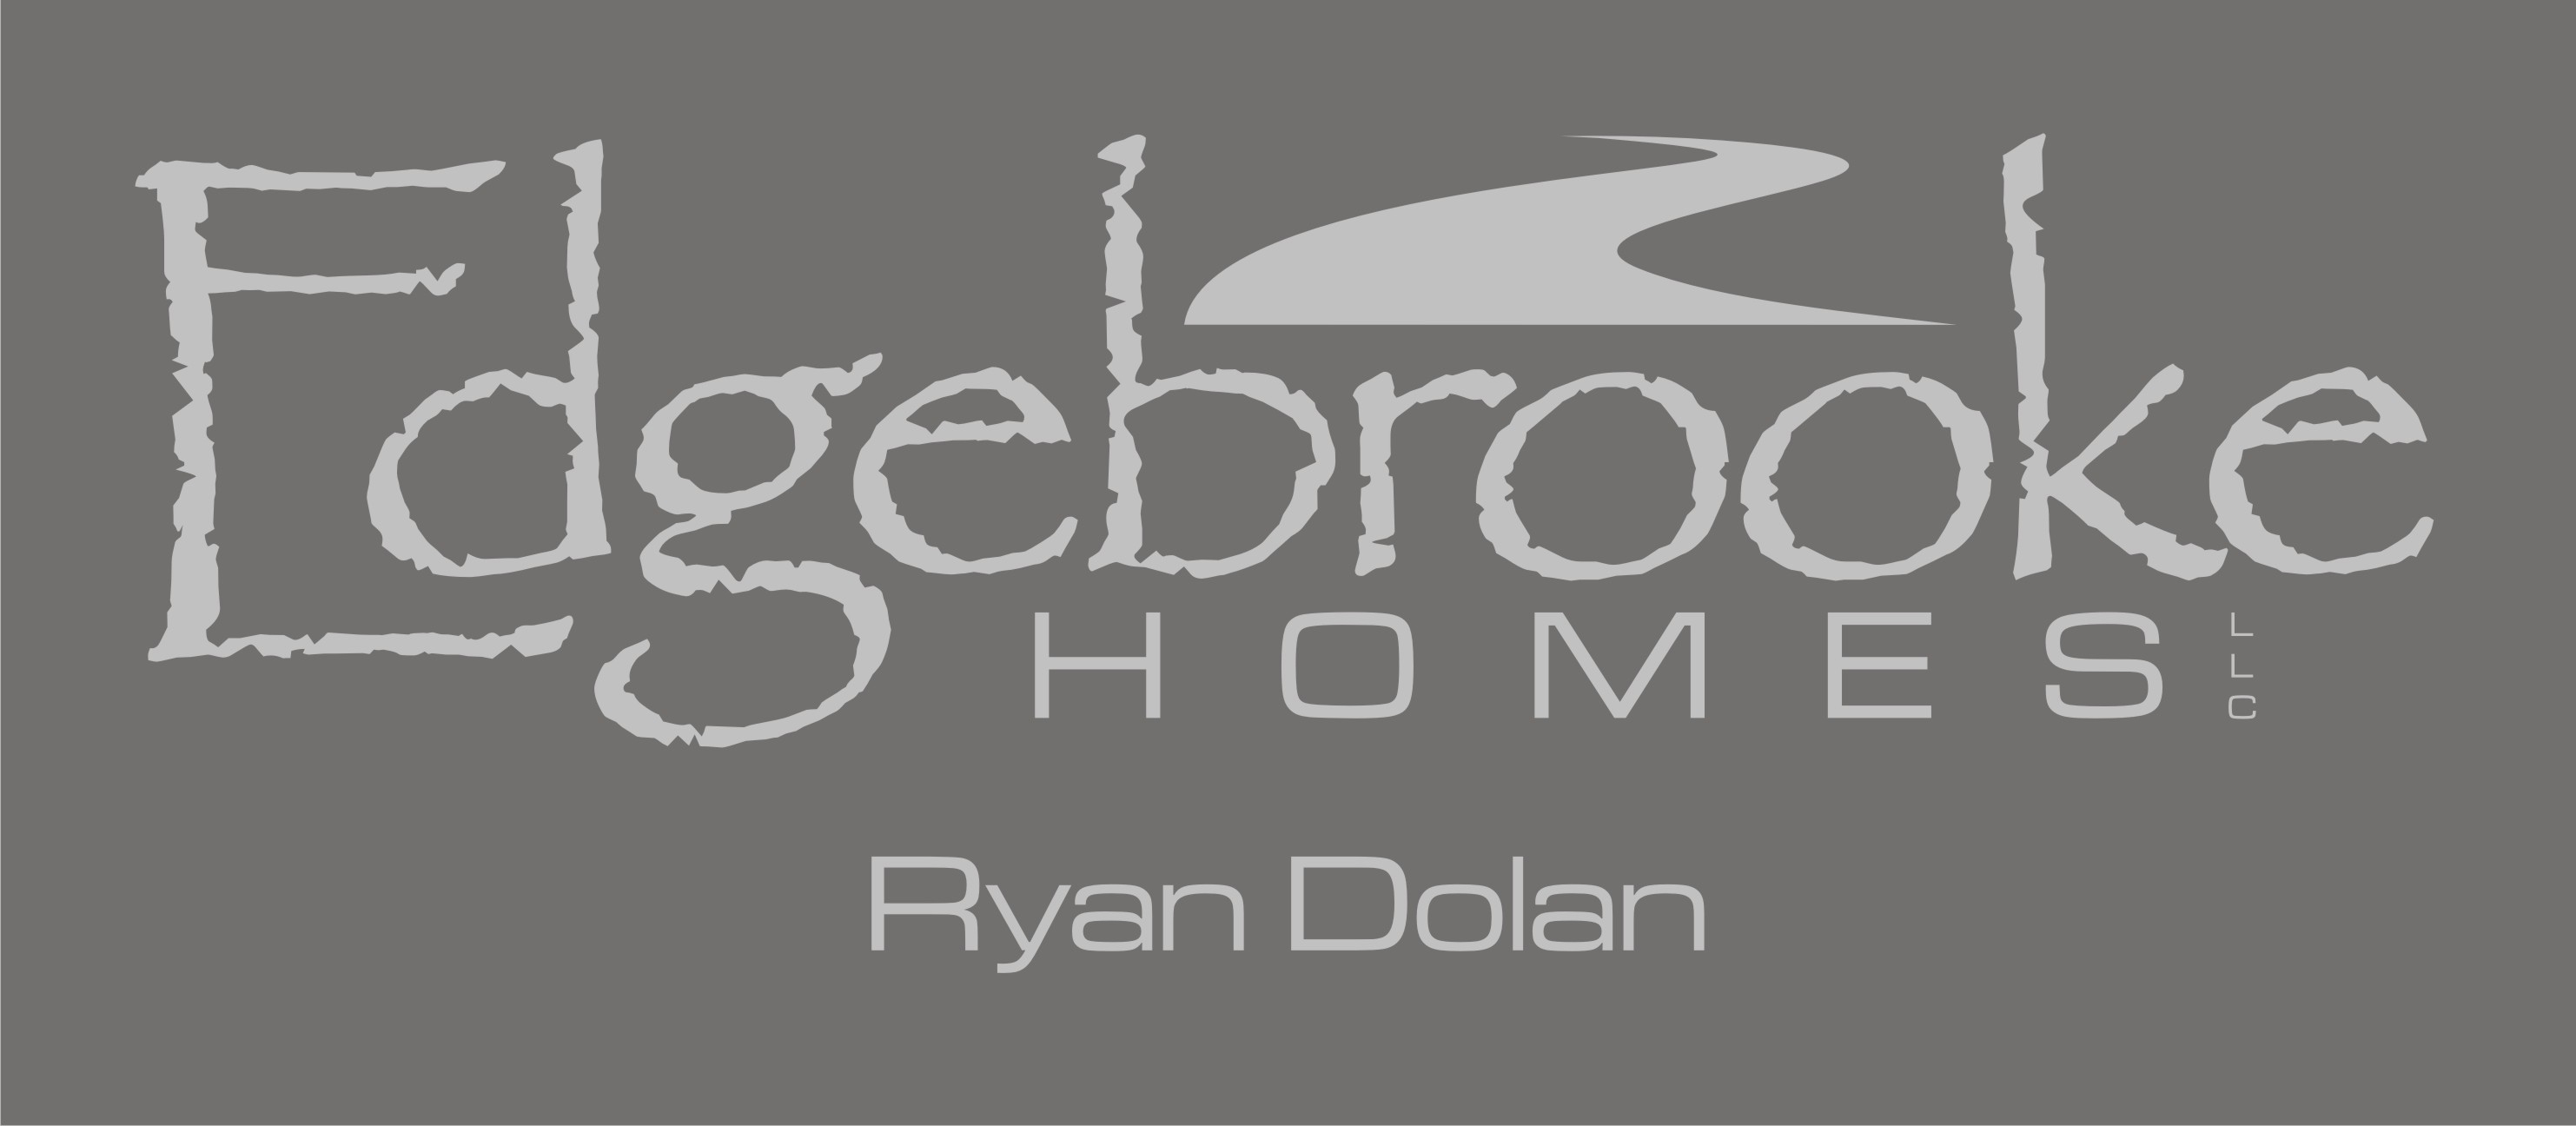 Edgebrooke Homes - Ryan Dolan